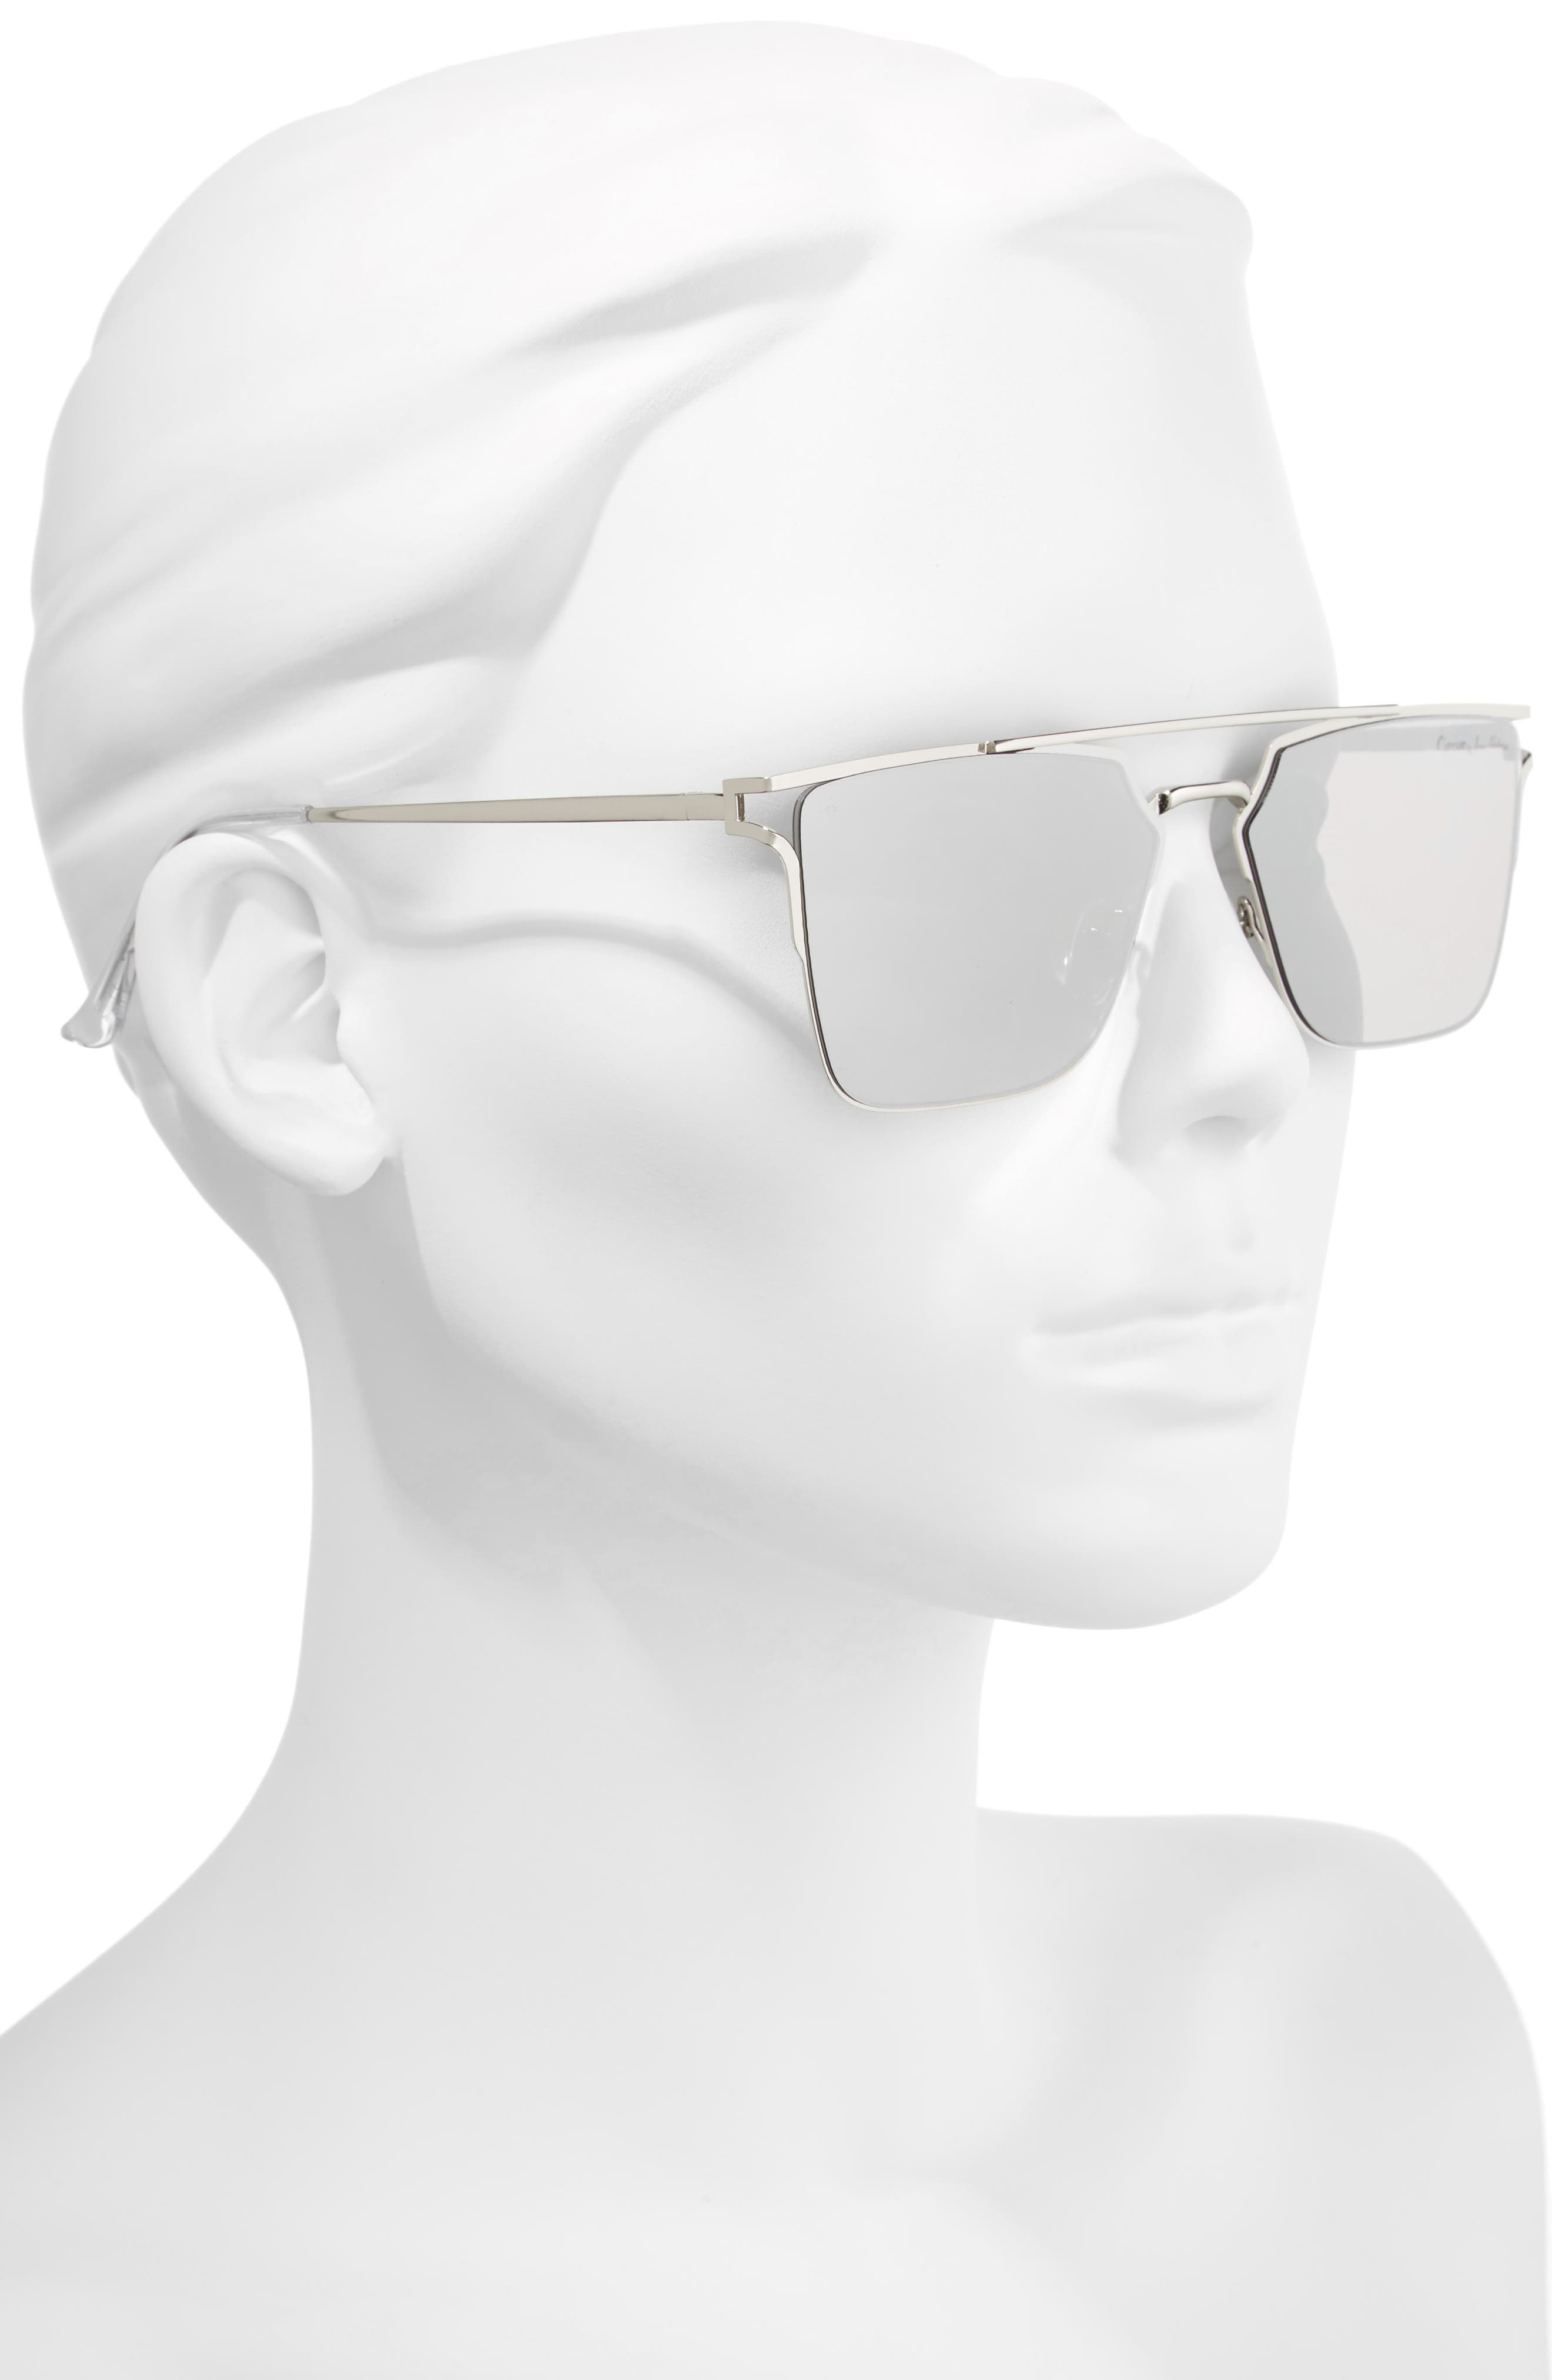 56mm Flat Top Sunglasses,                             Alternate thumbnail 2, color,                             Silver